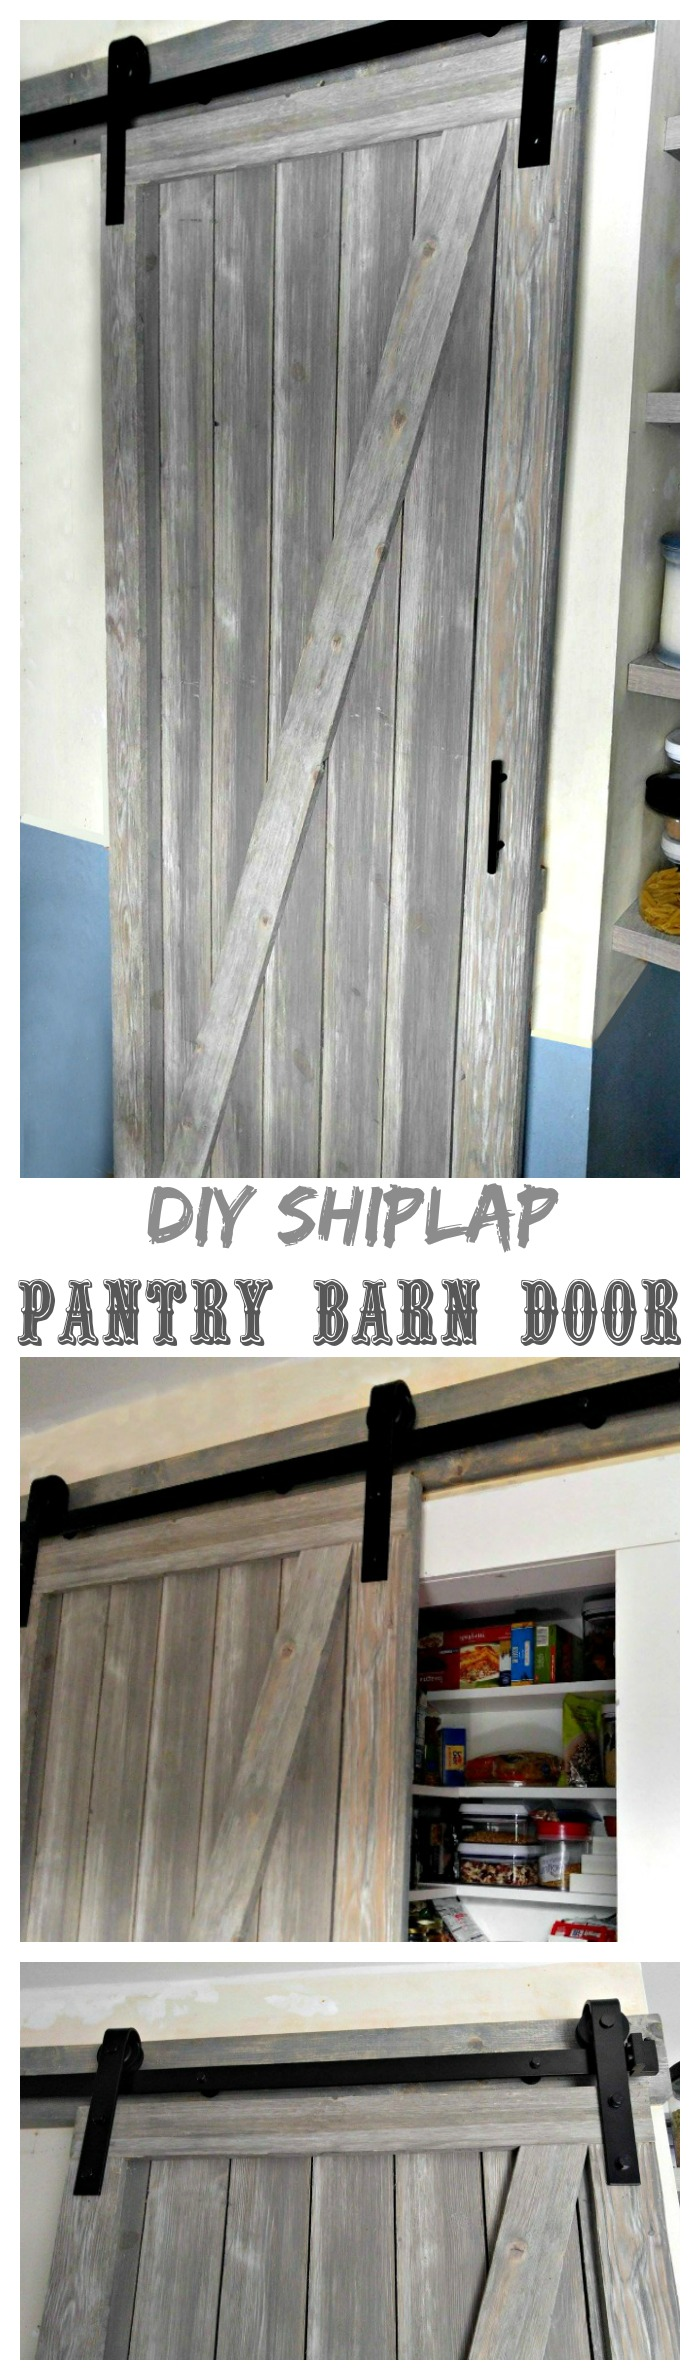 Shiplap Barn Door How To Make A Sliding Barn Door